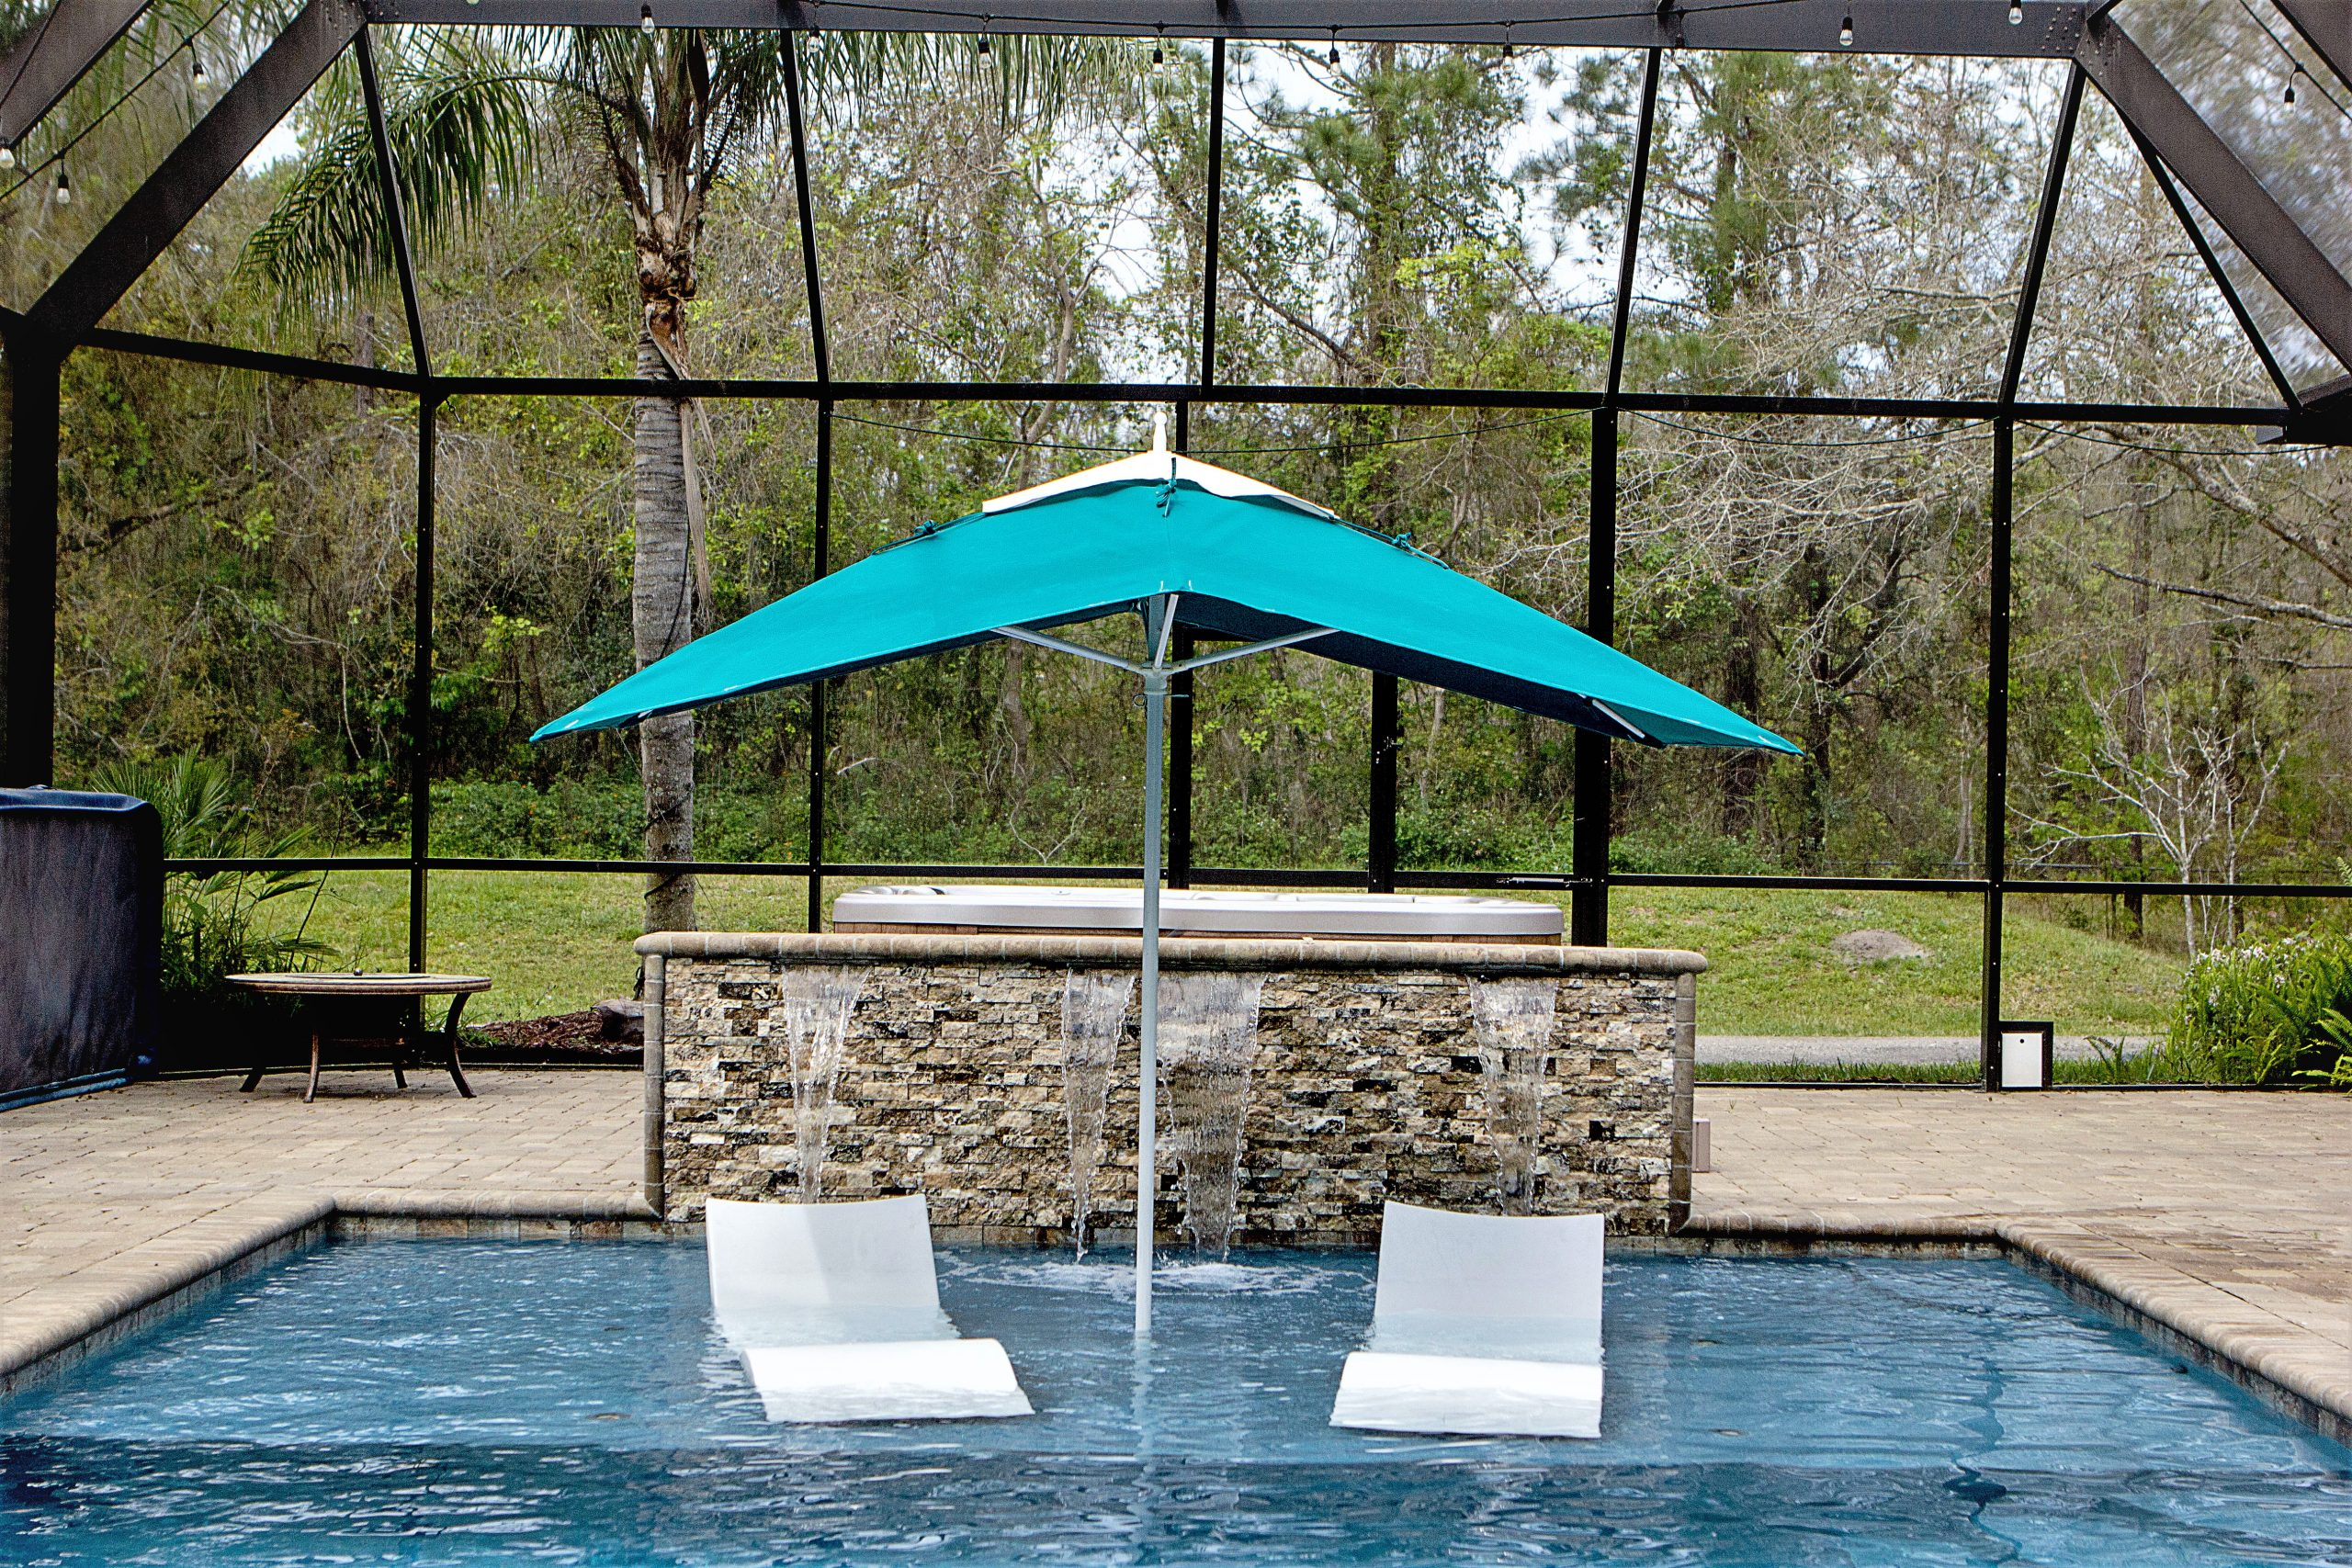 Light blue umbrella by pool